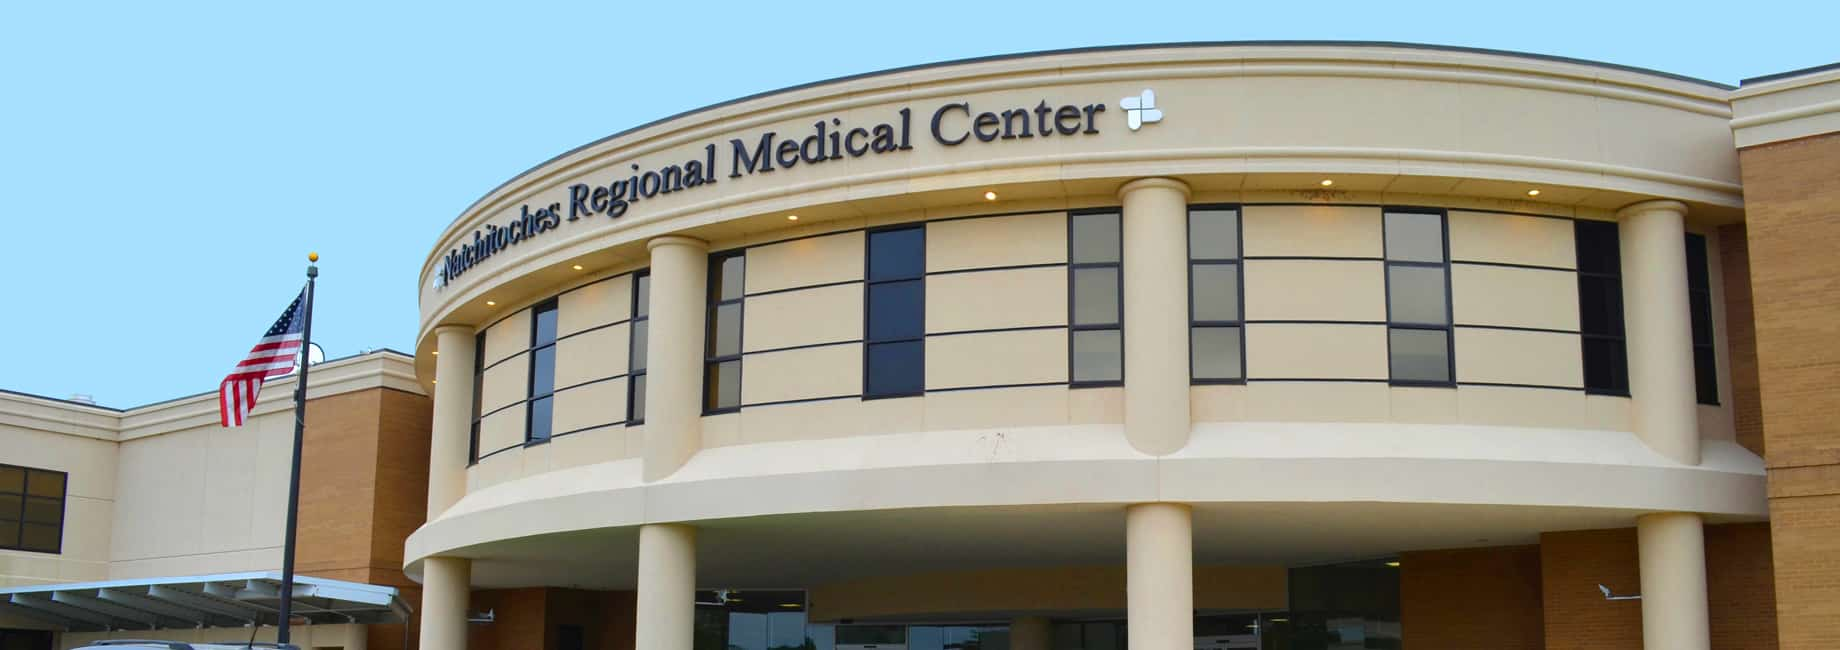 Foundation - Natchitoches Regional Medical Center